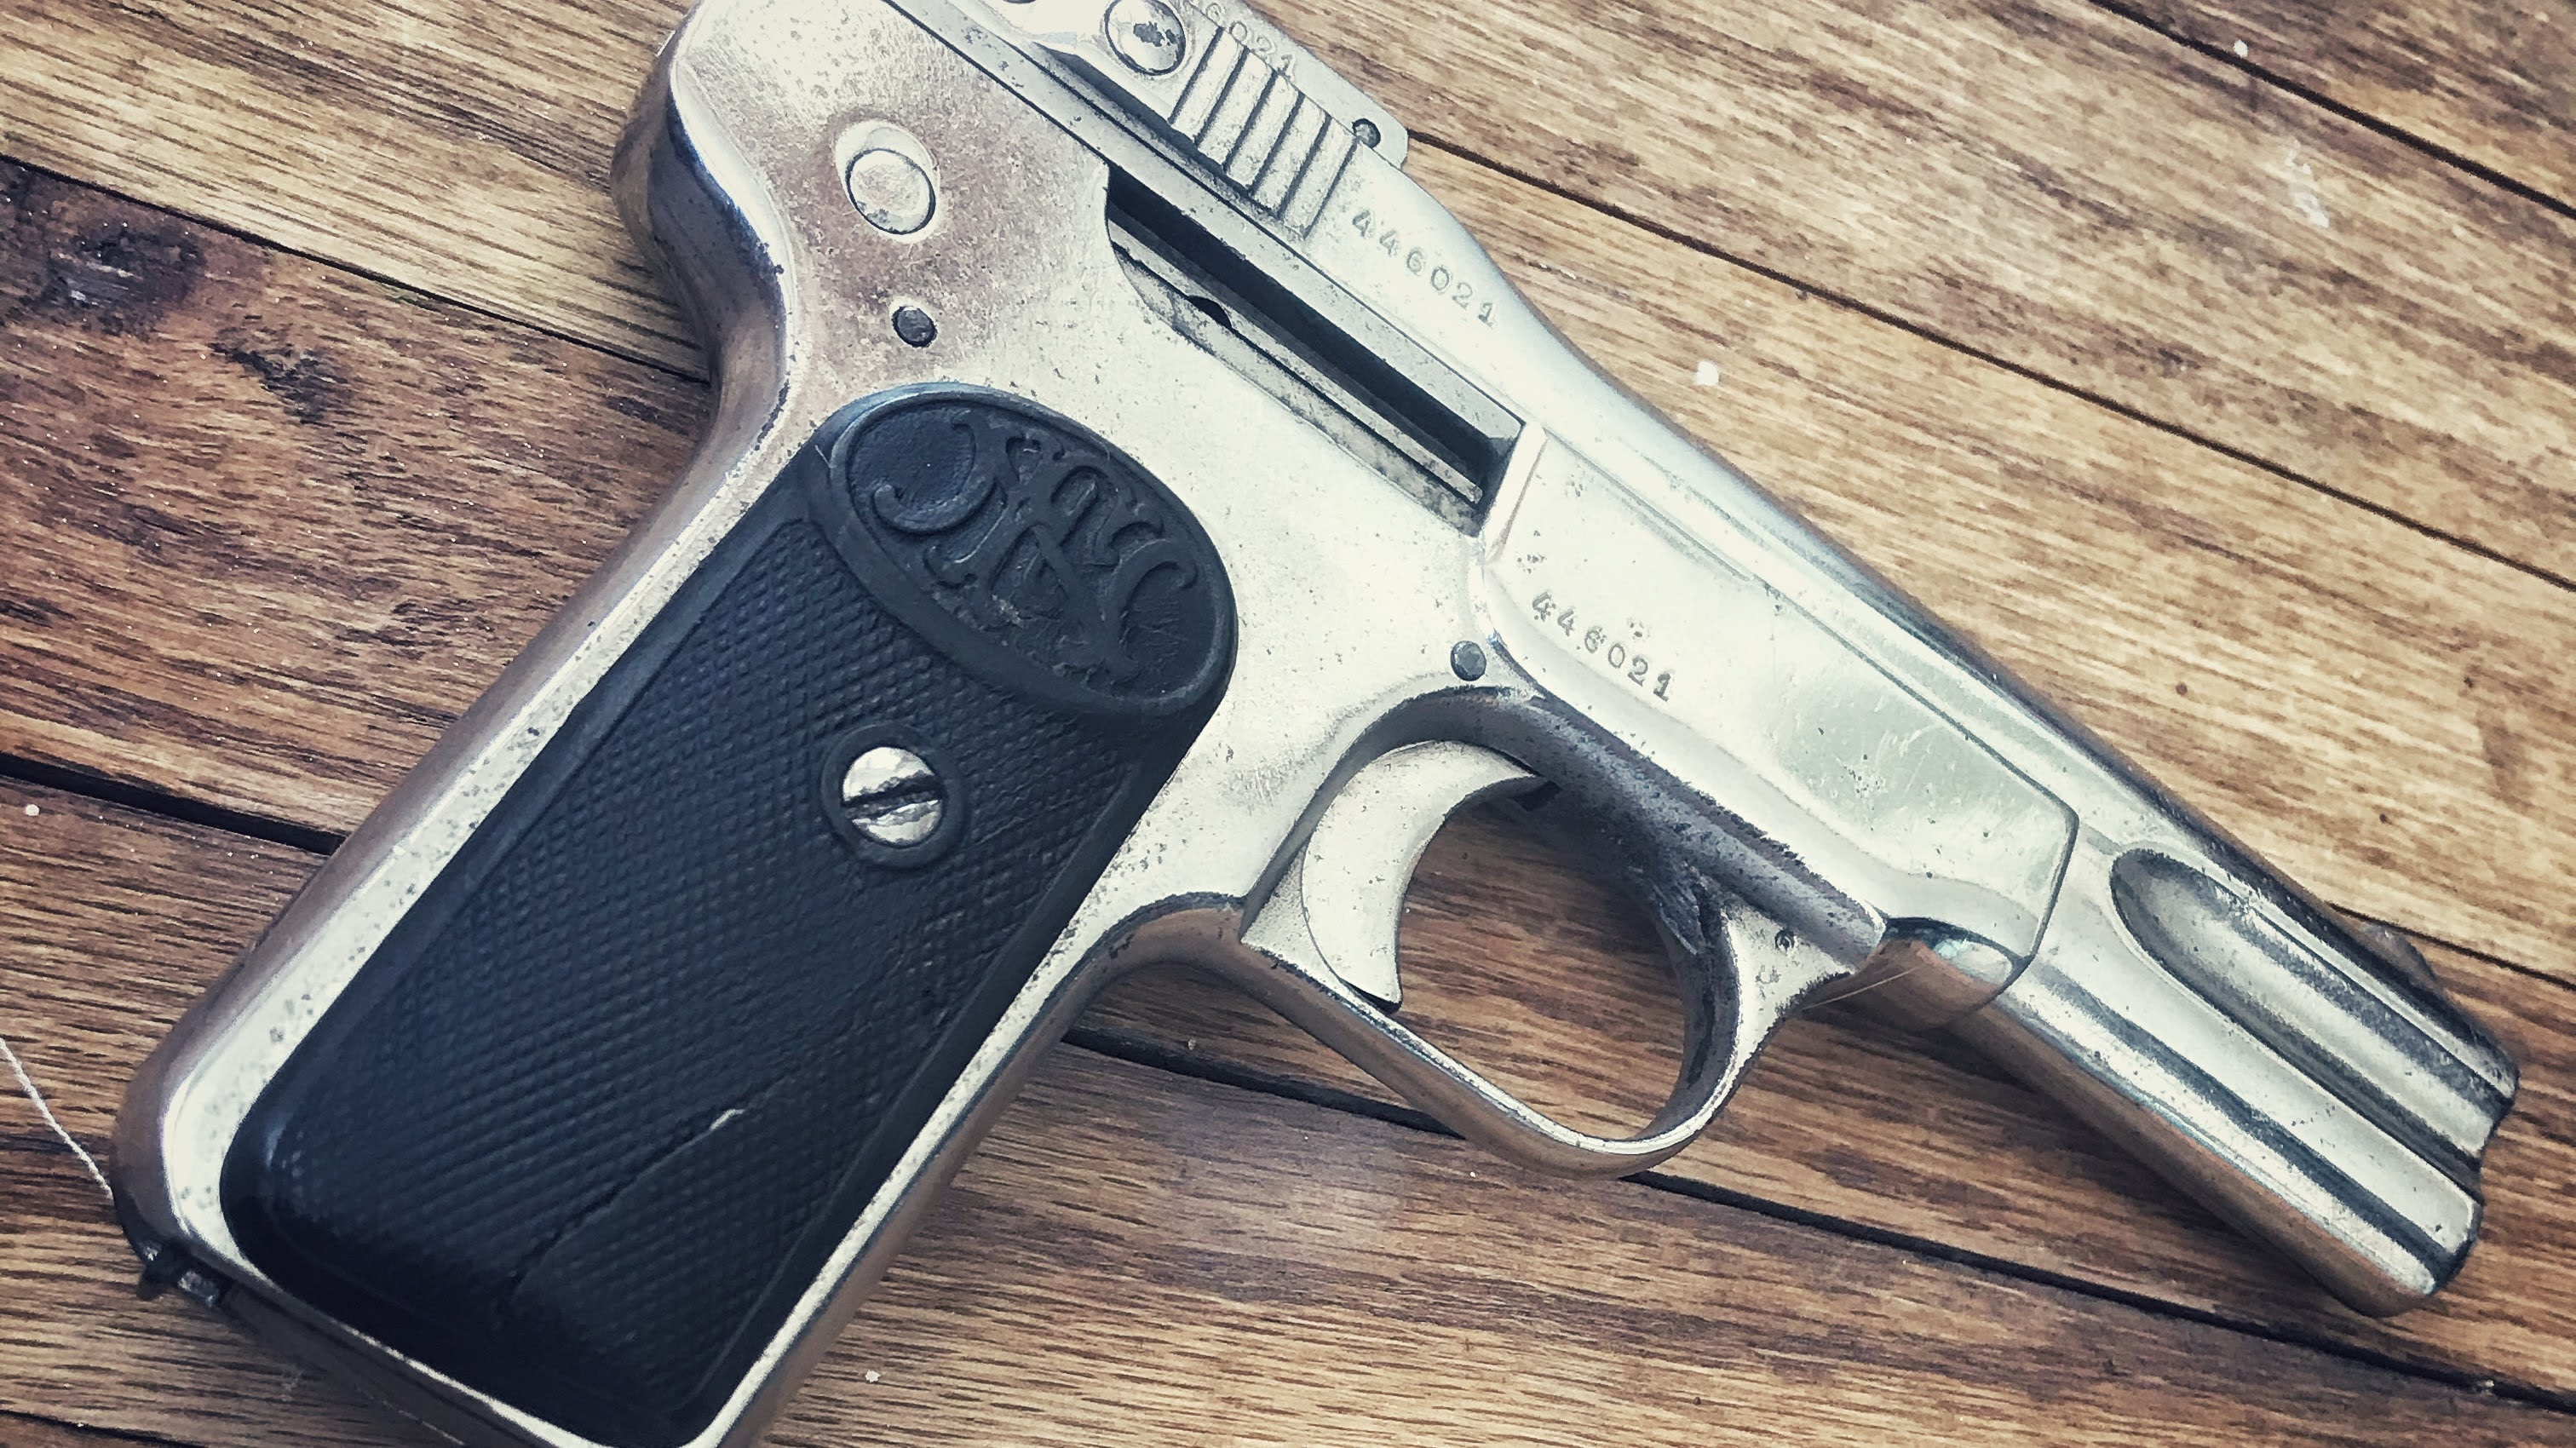 Curious Relics #002: FN 1900 Part II – The First Pistol With a Slide!